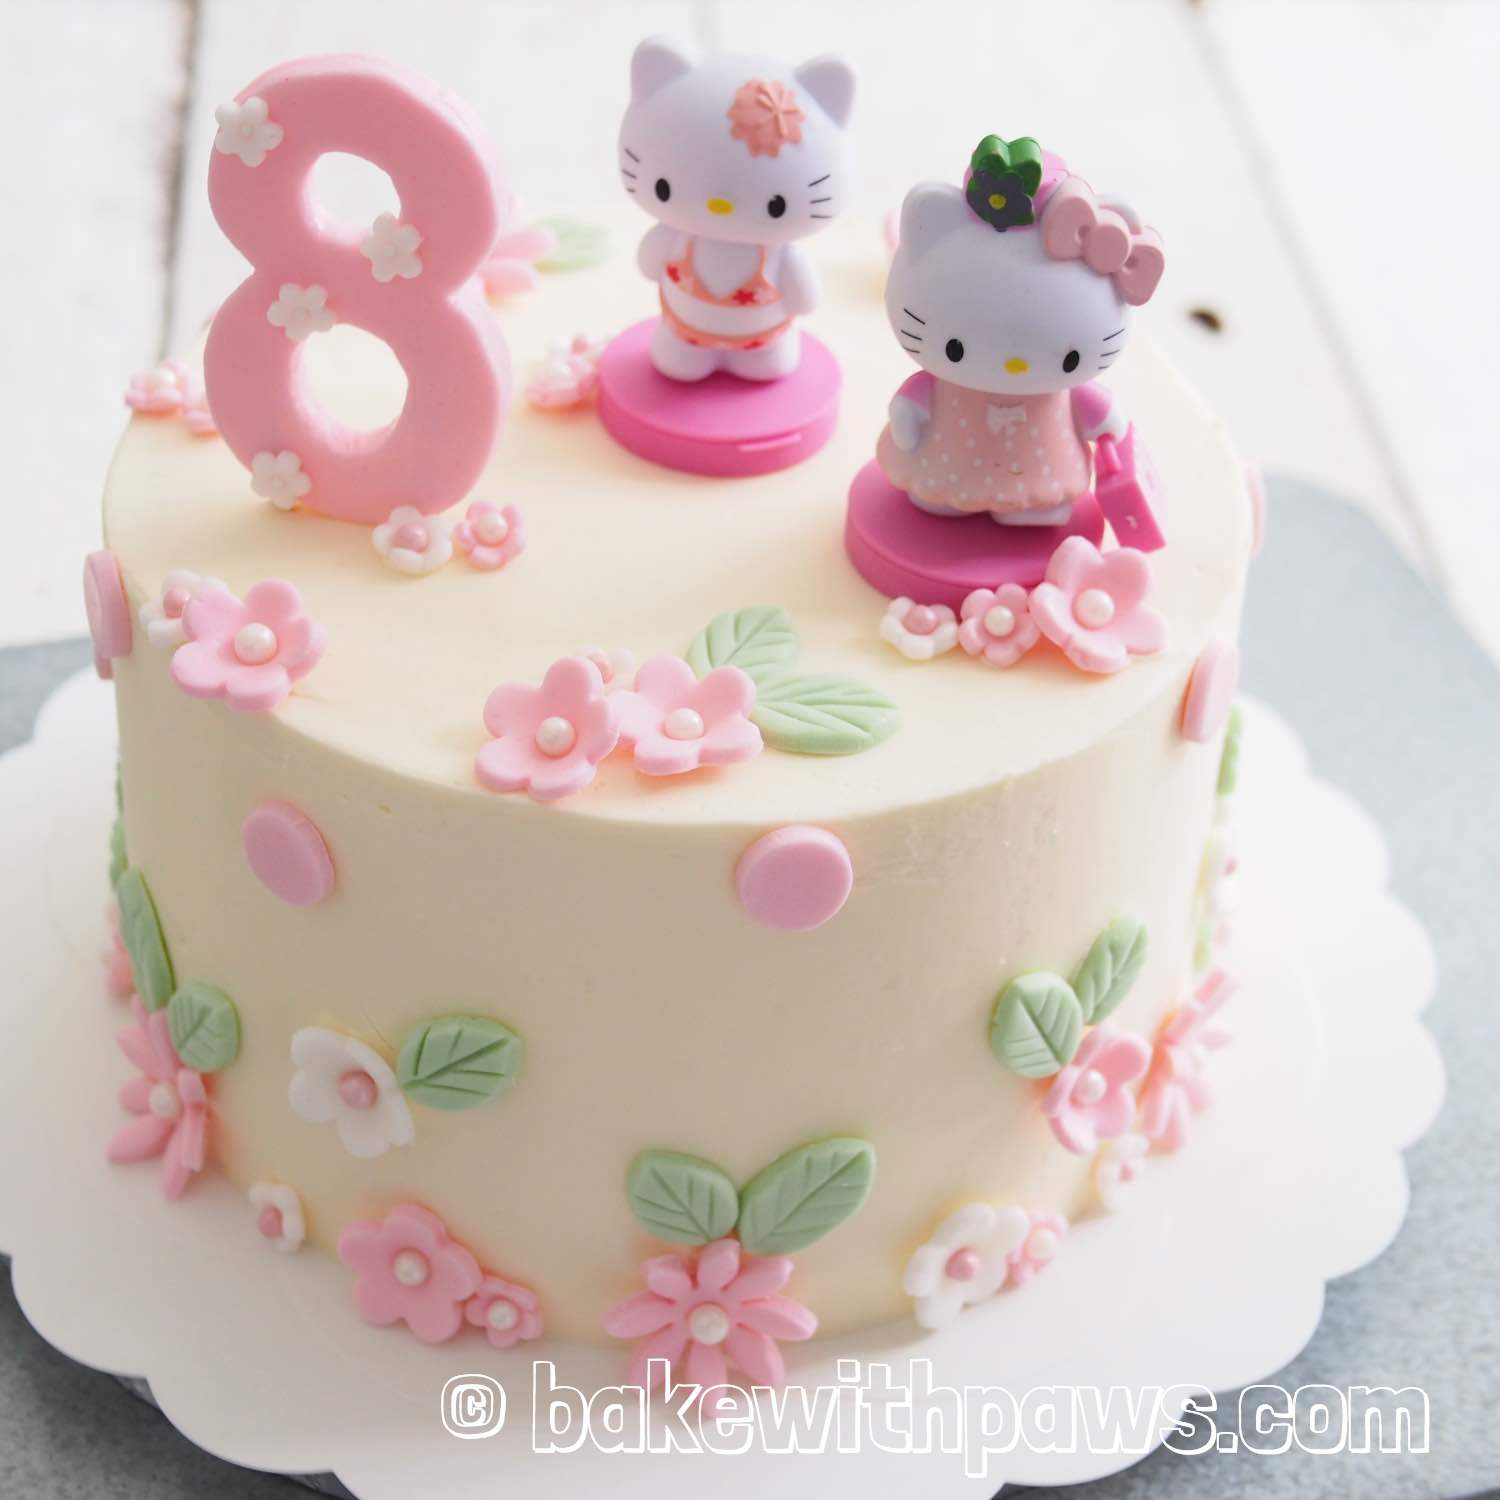 Hello Kitty Cake Bake With Paws